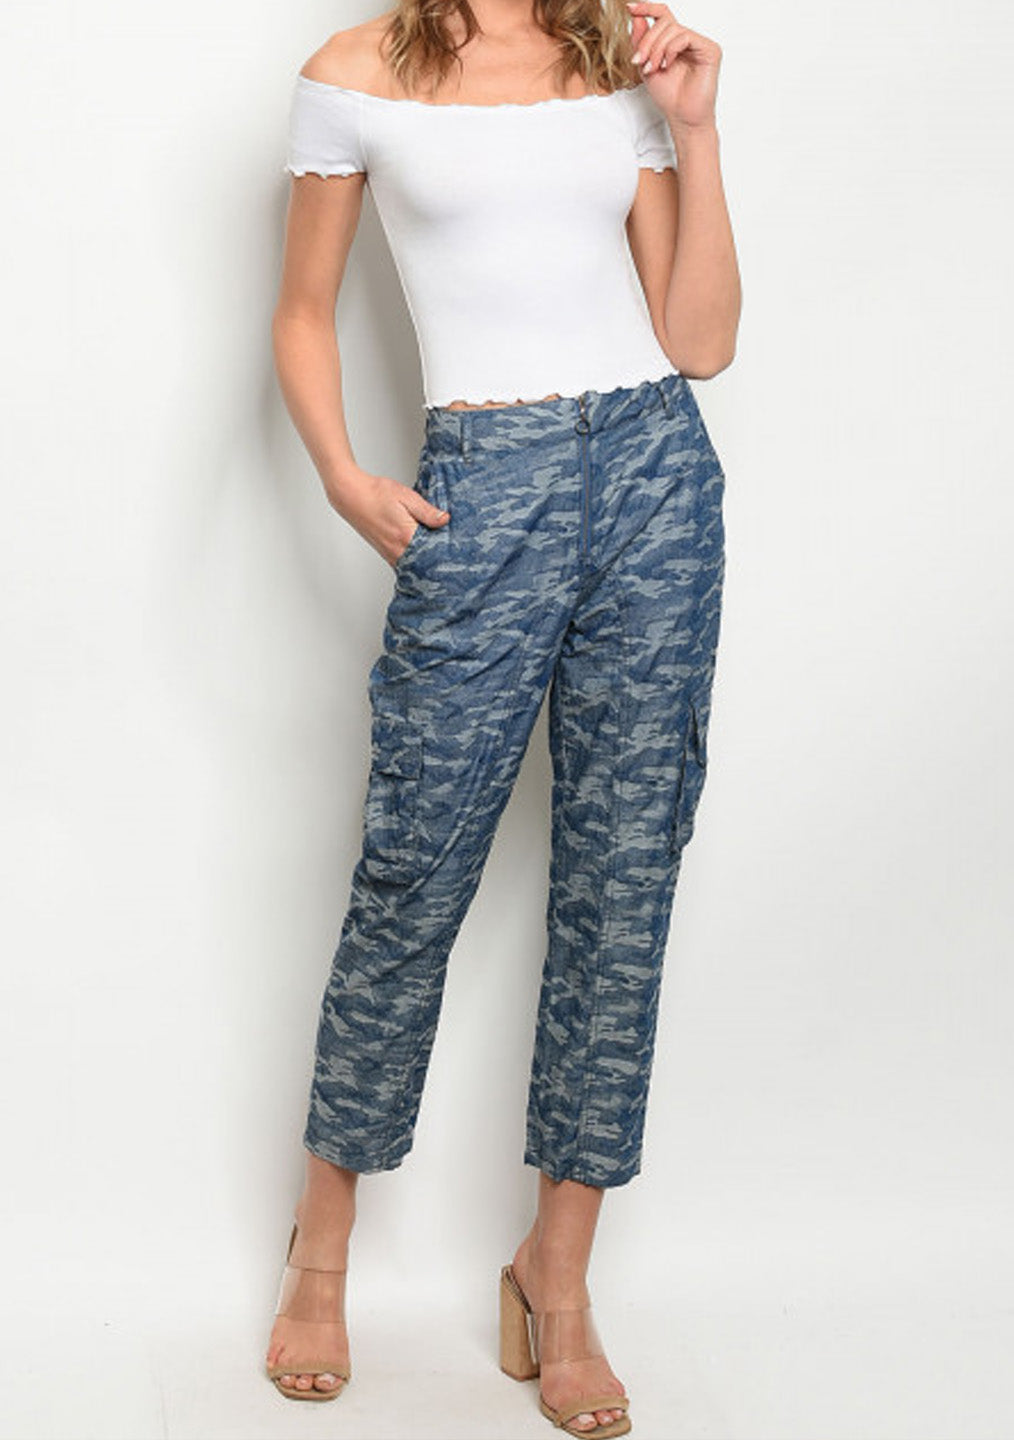 Blue Camouflage Pants